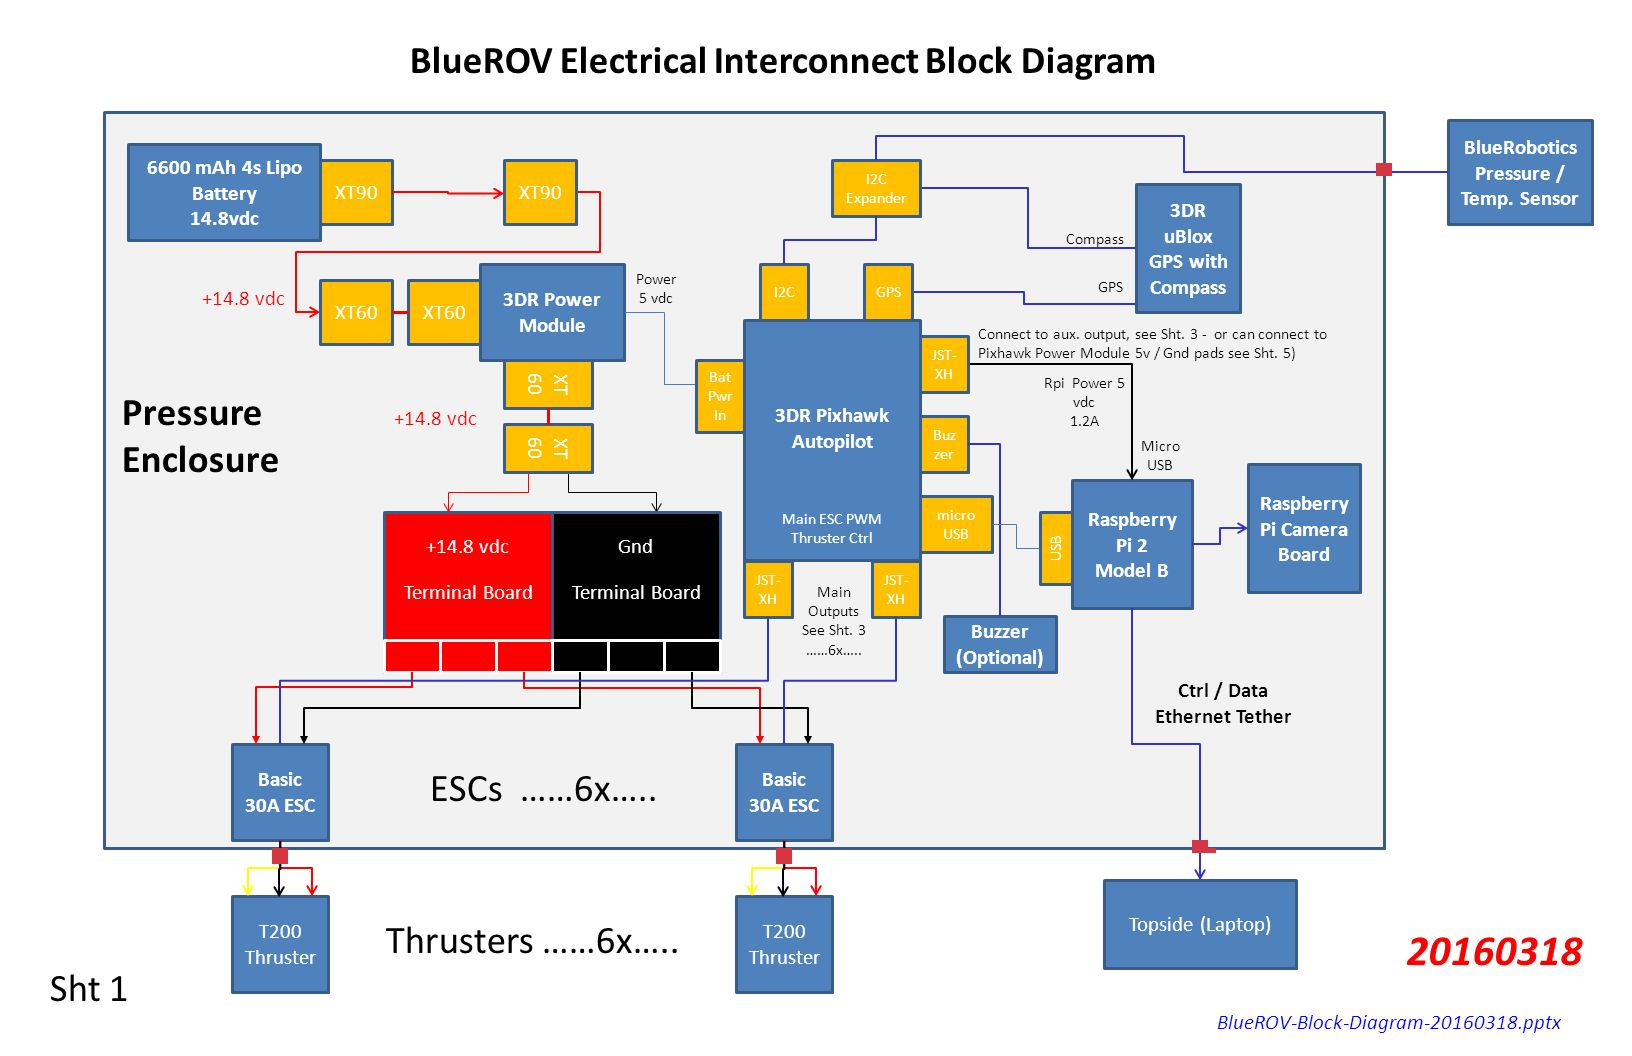 micro usb b wiring diagram 1980 yamaha xt250 bluerov electrical interconnect block - ppt video online download